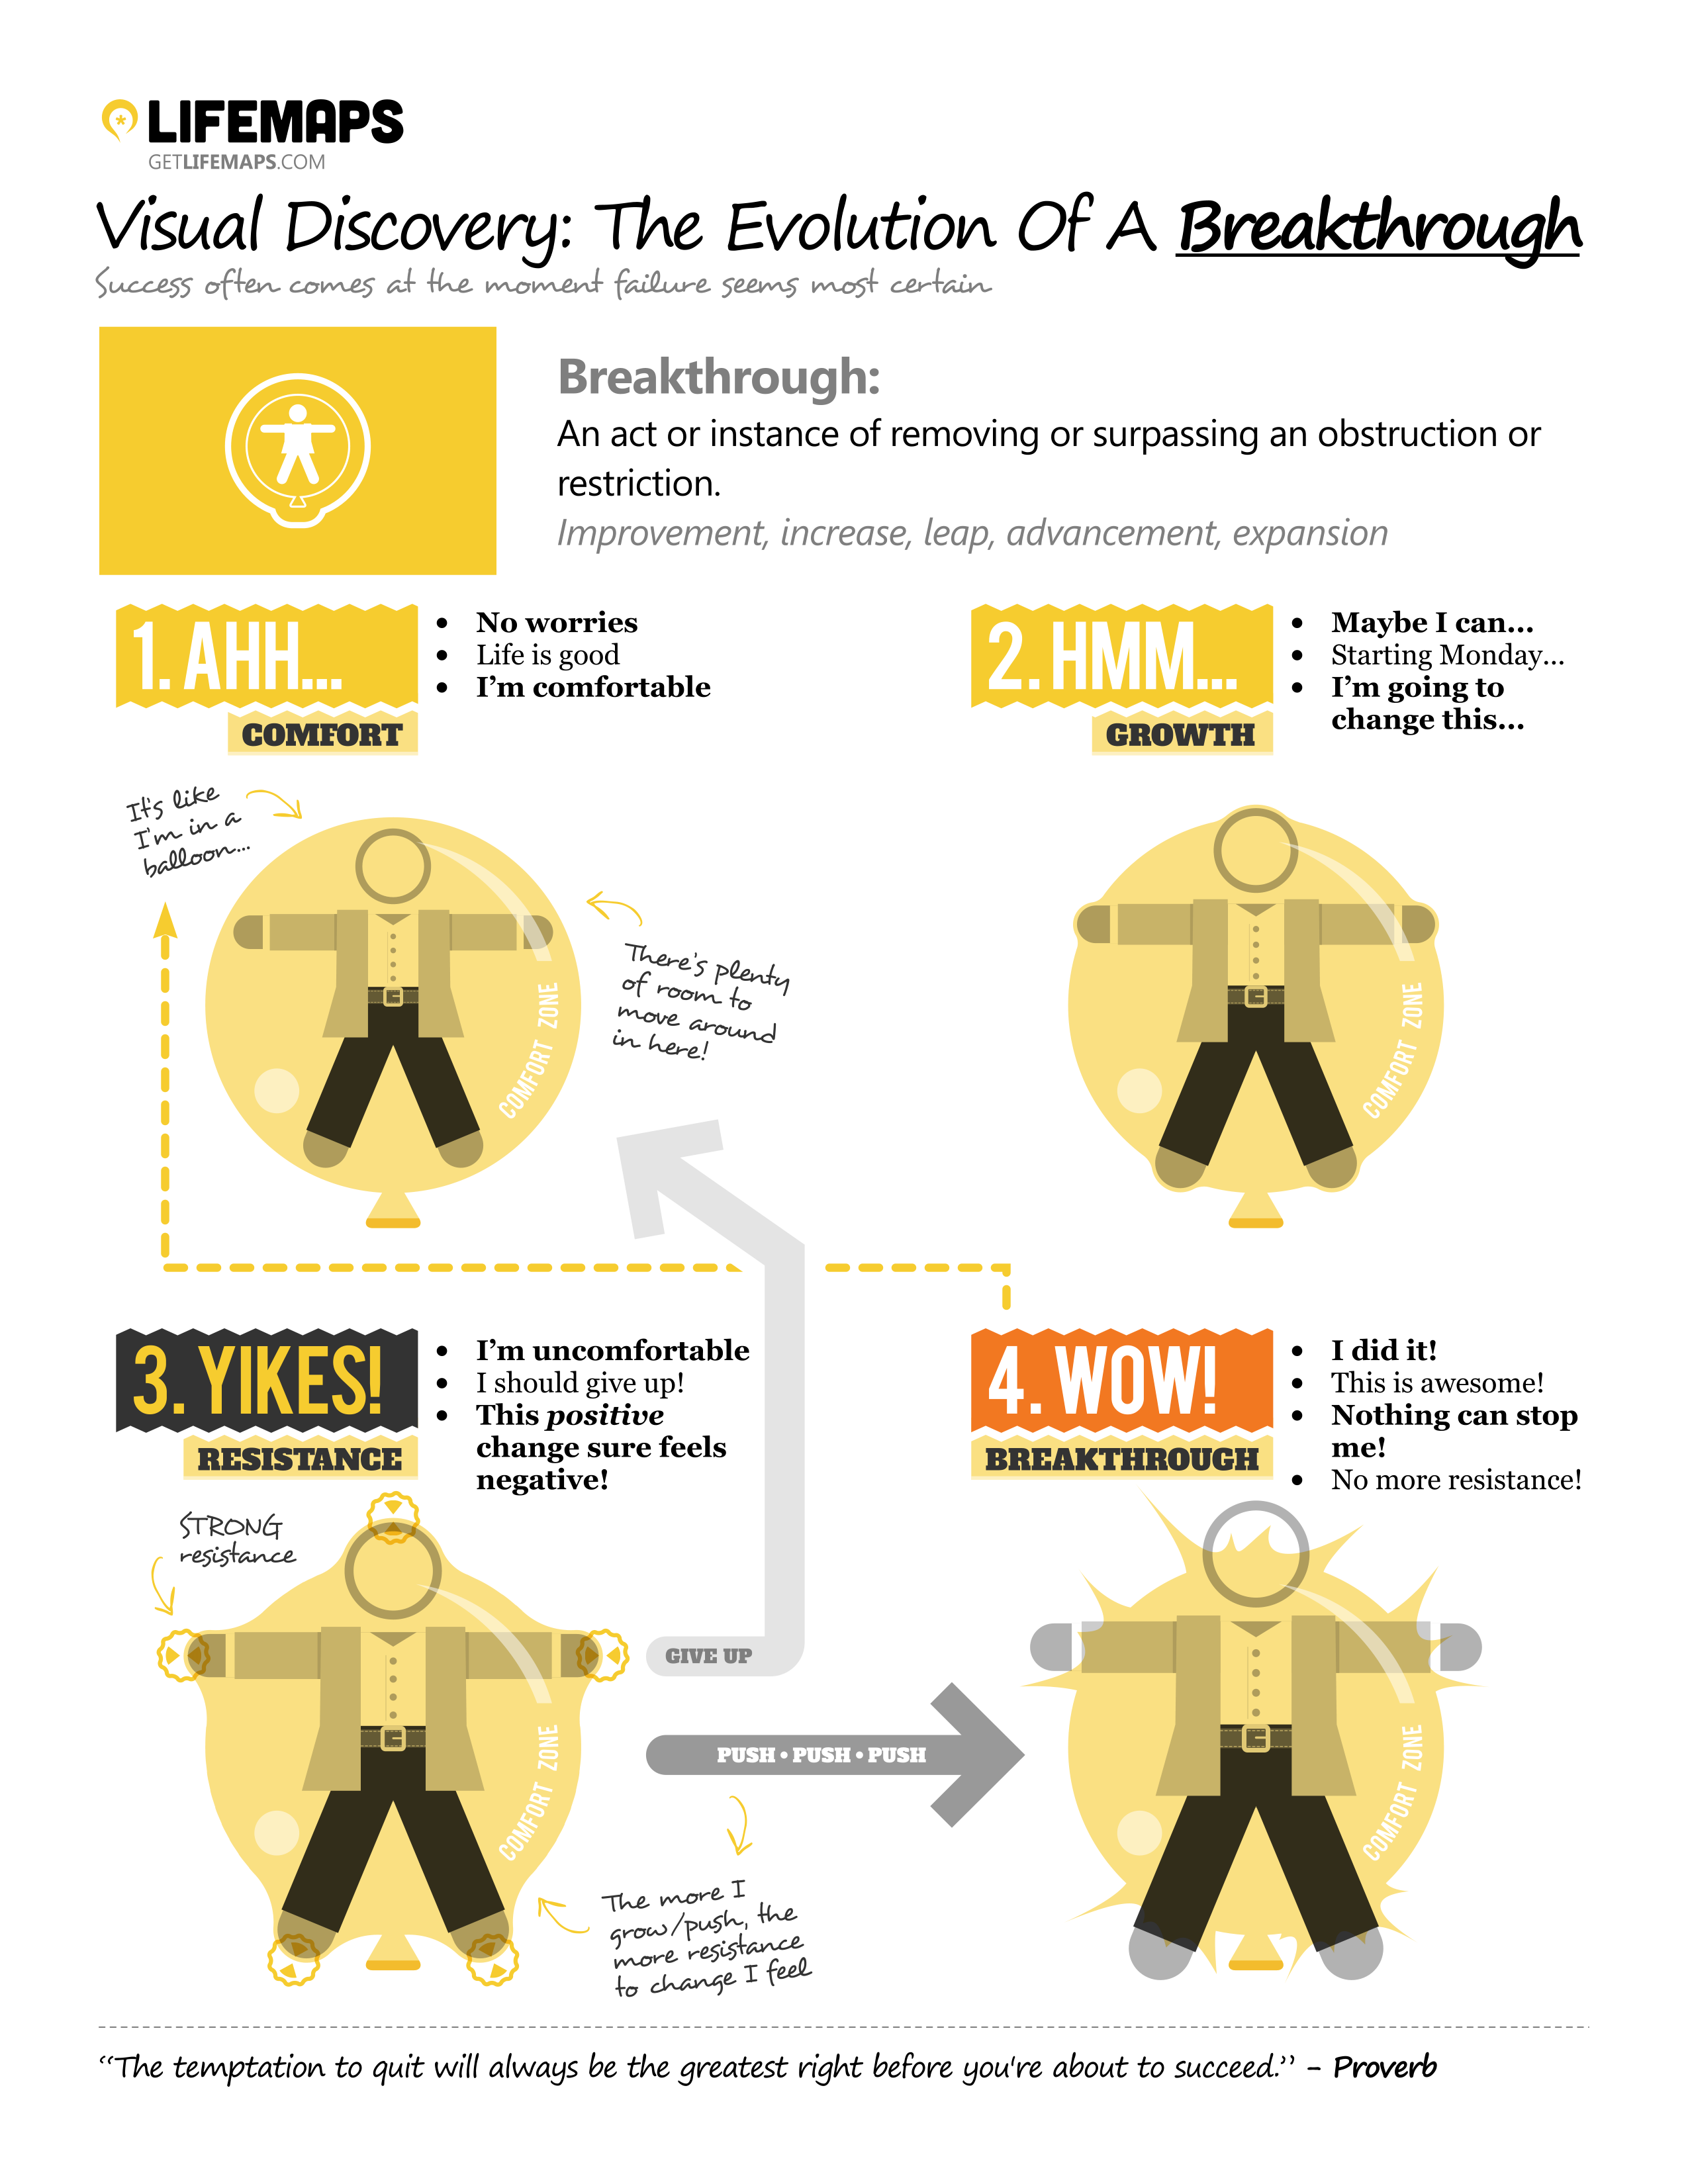 the-4-stages-of-a-breakthrough--where-are-you_5188274f5b8d5